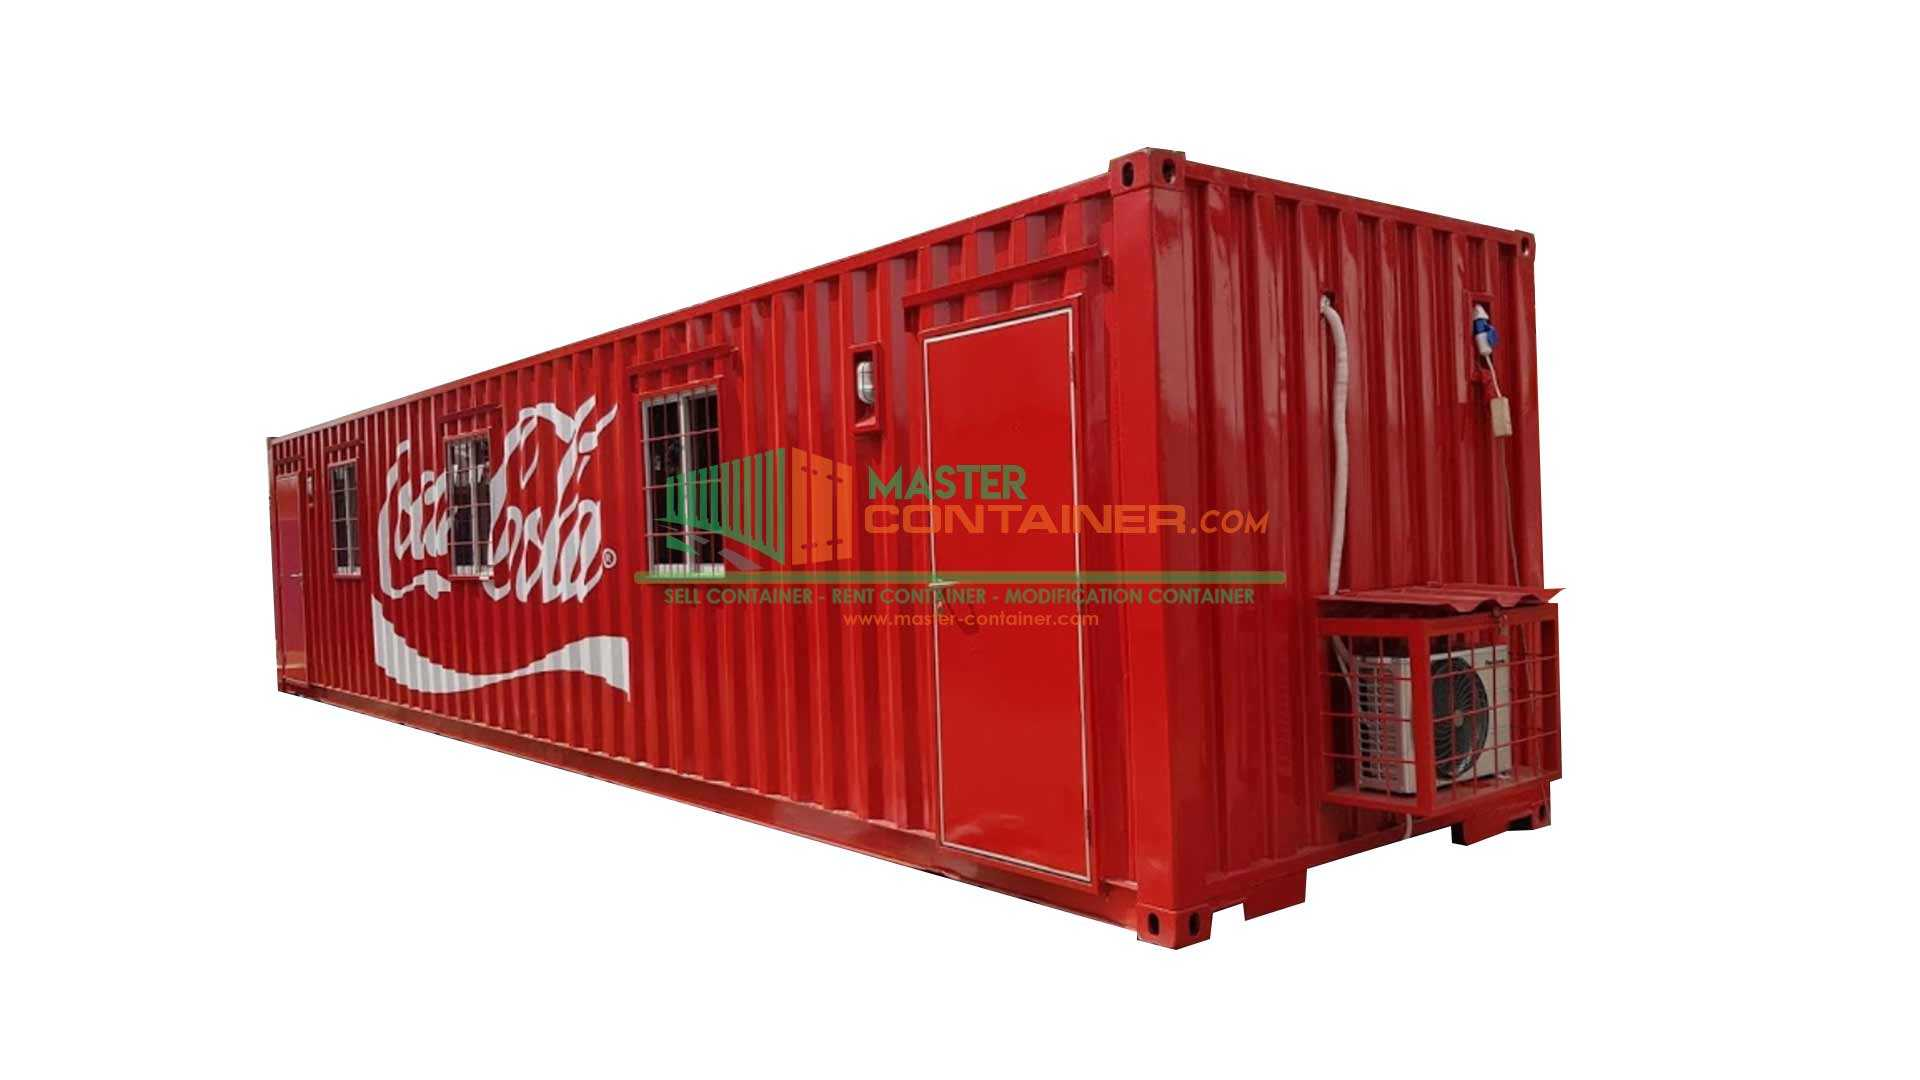 Coca Cola Office Container 40ft